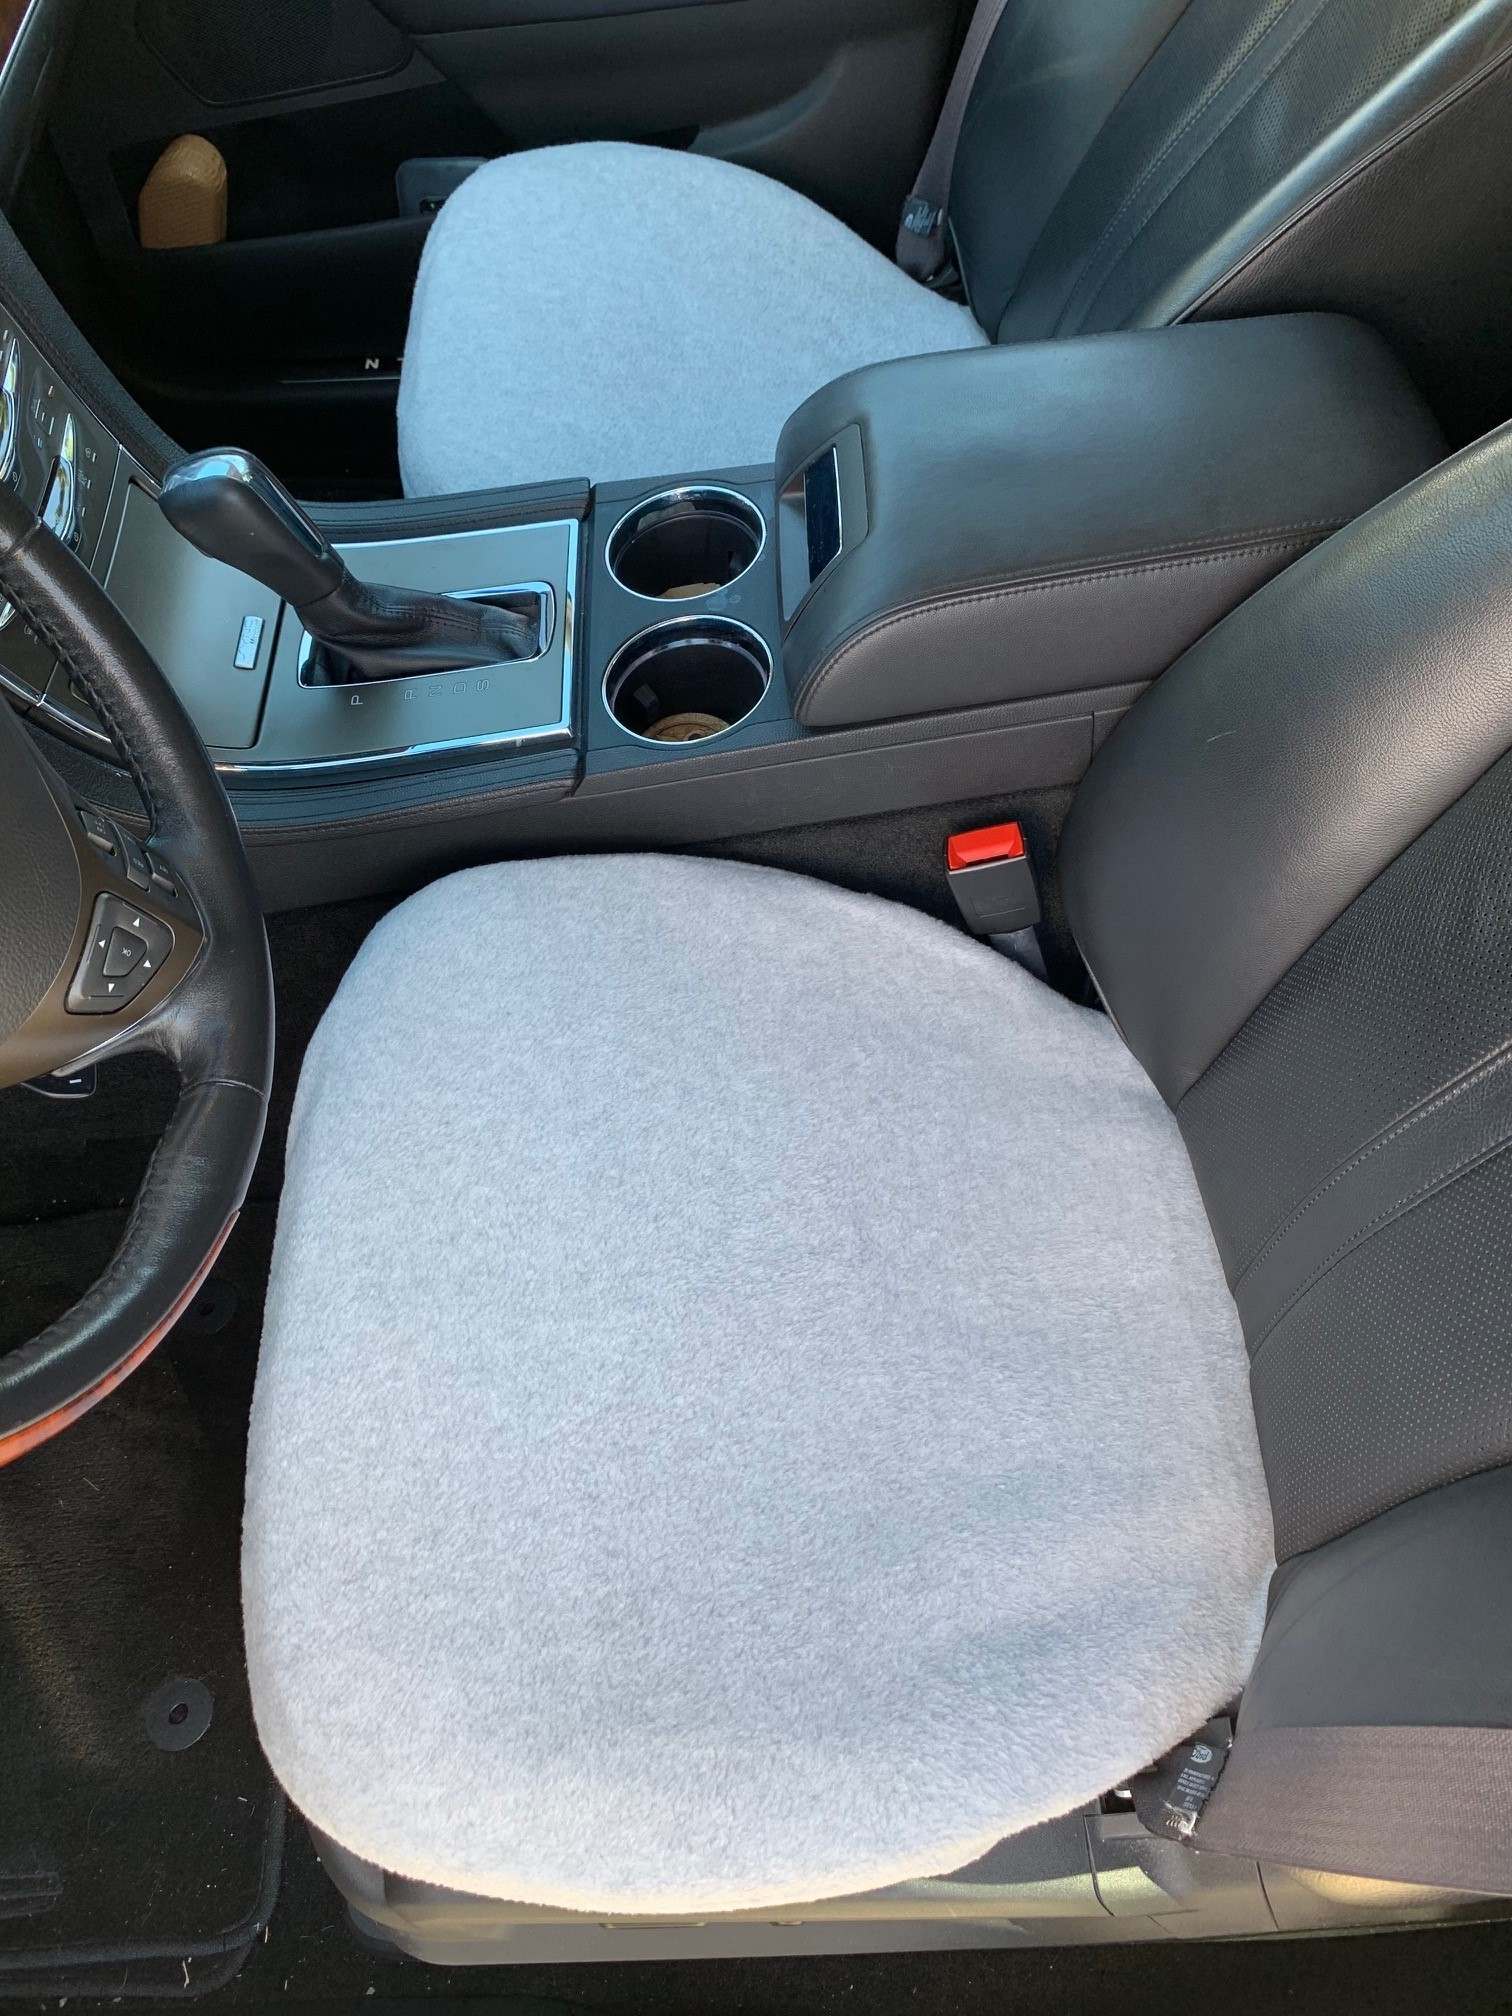 Fleece Bottom Seat Cover for Ford Expedition 2000-19 (SINGLE)